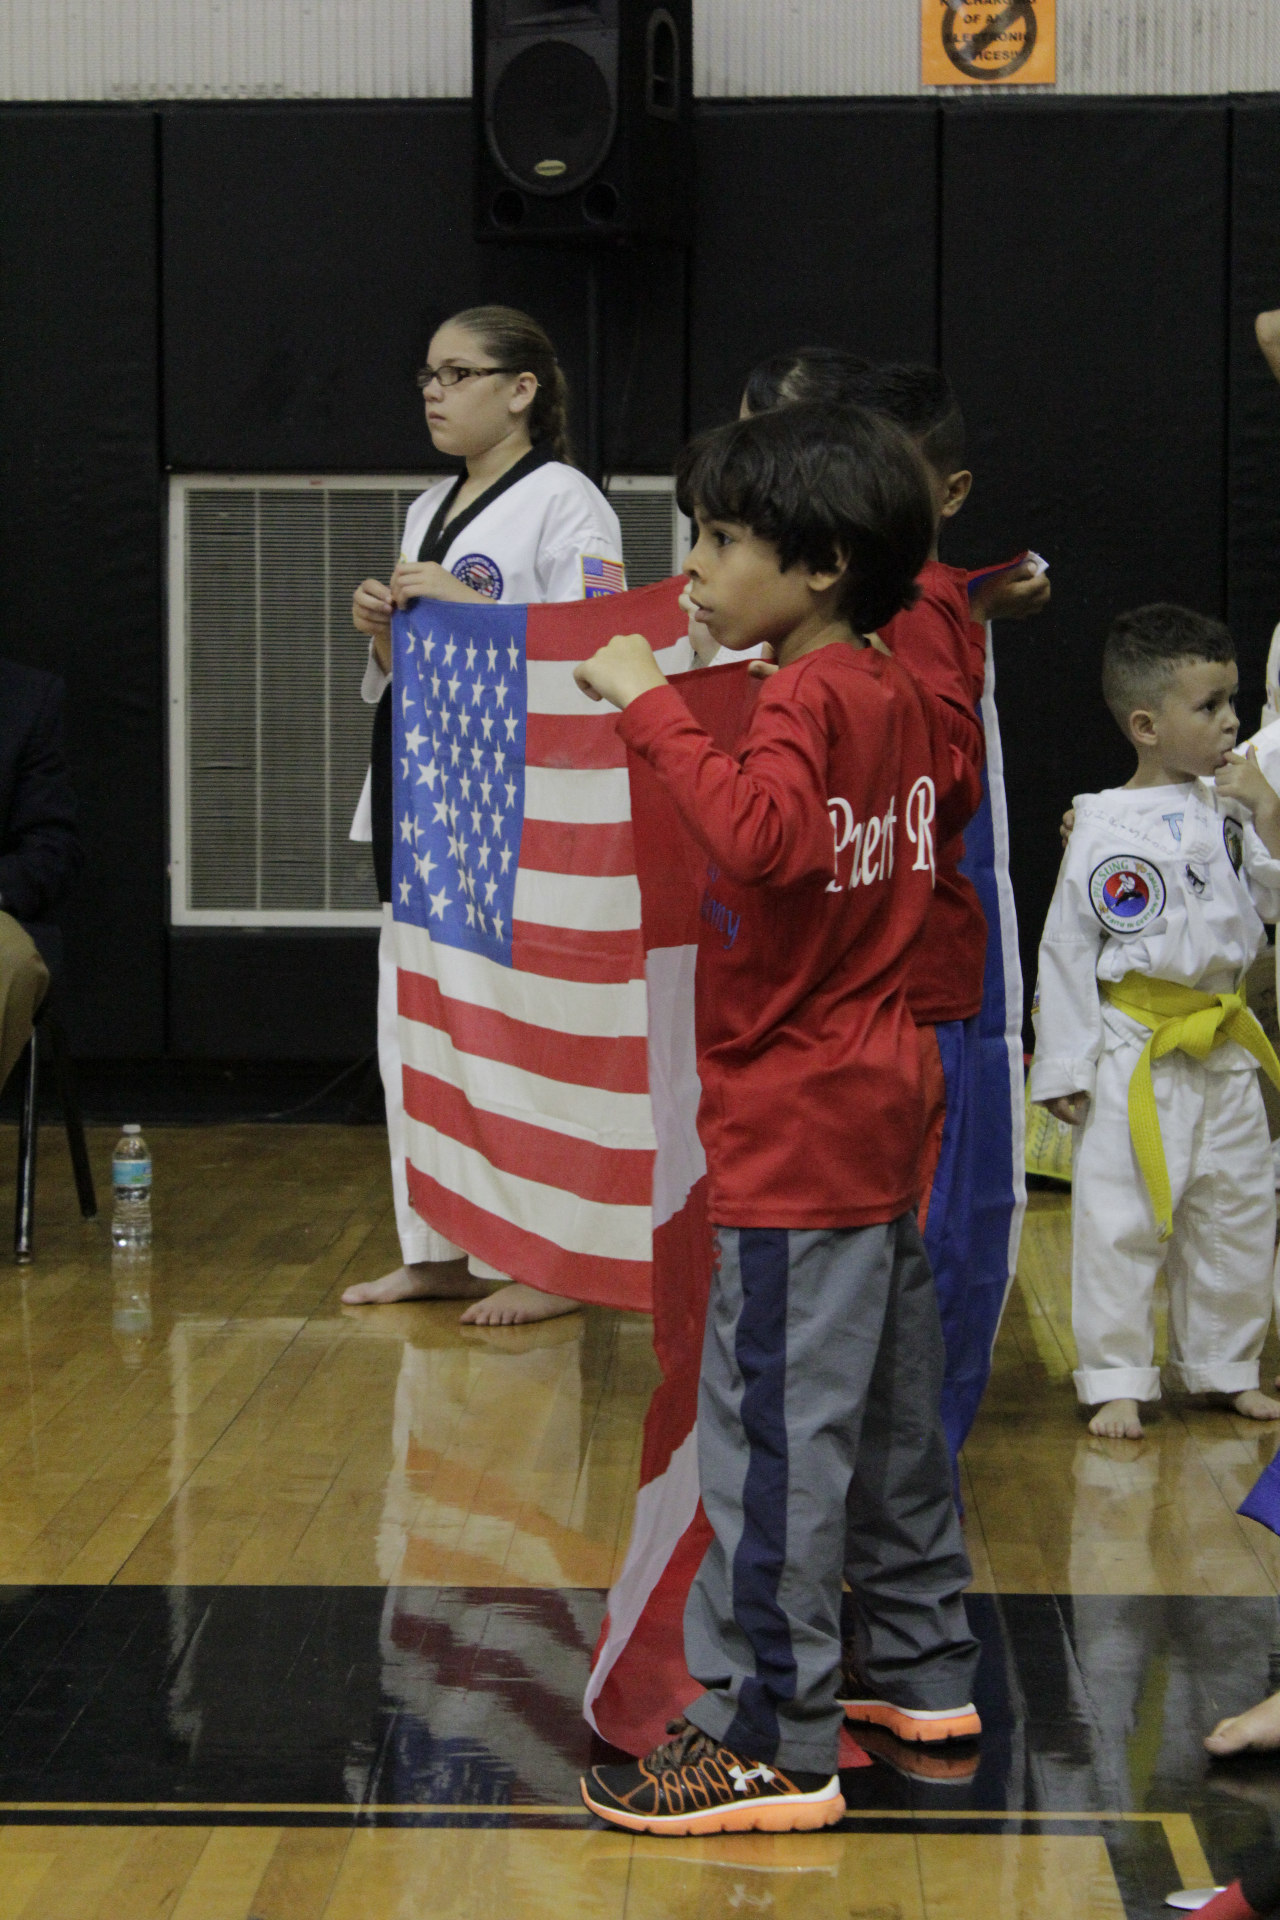 19th Orlando Open TKD Championship